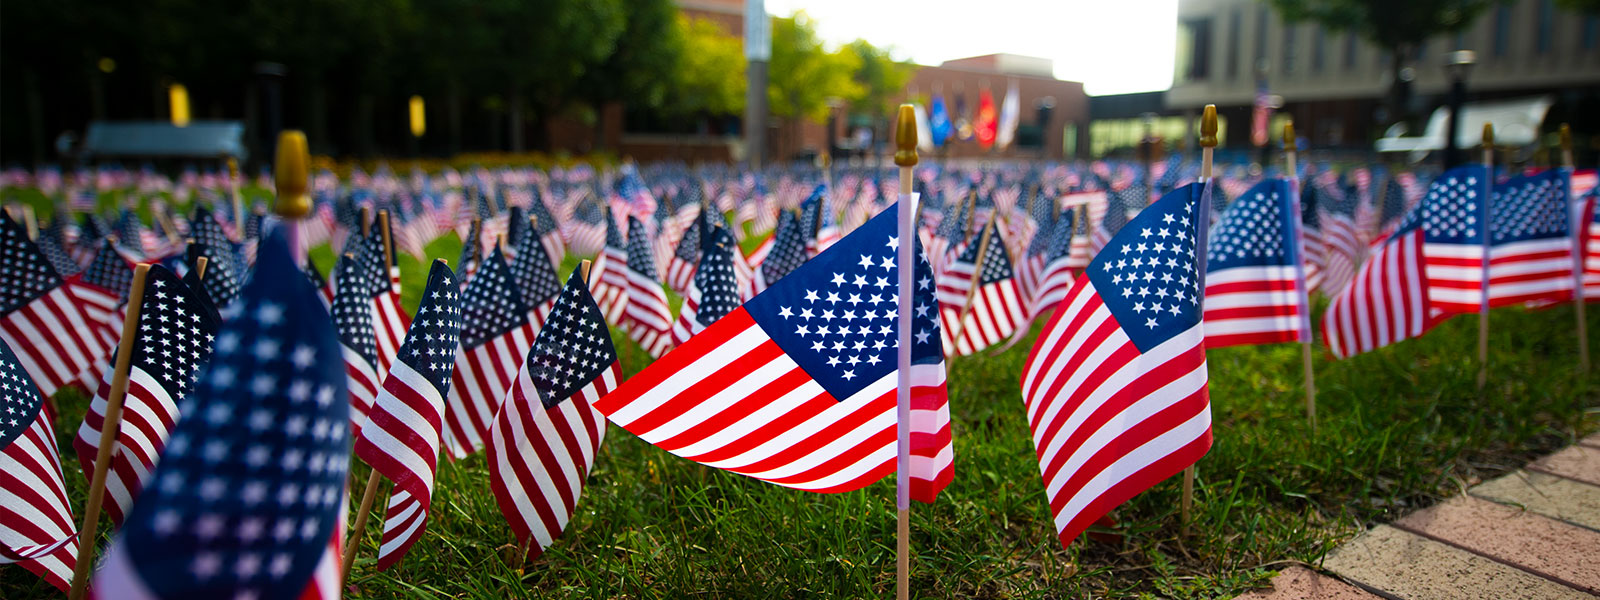 Dozens of American flags move with the wind in the ECC courtyard.